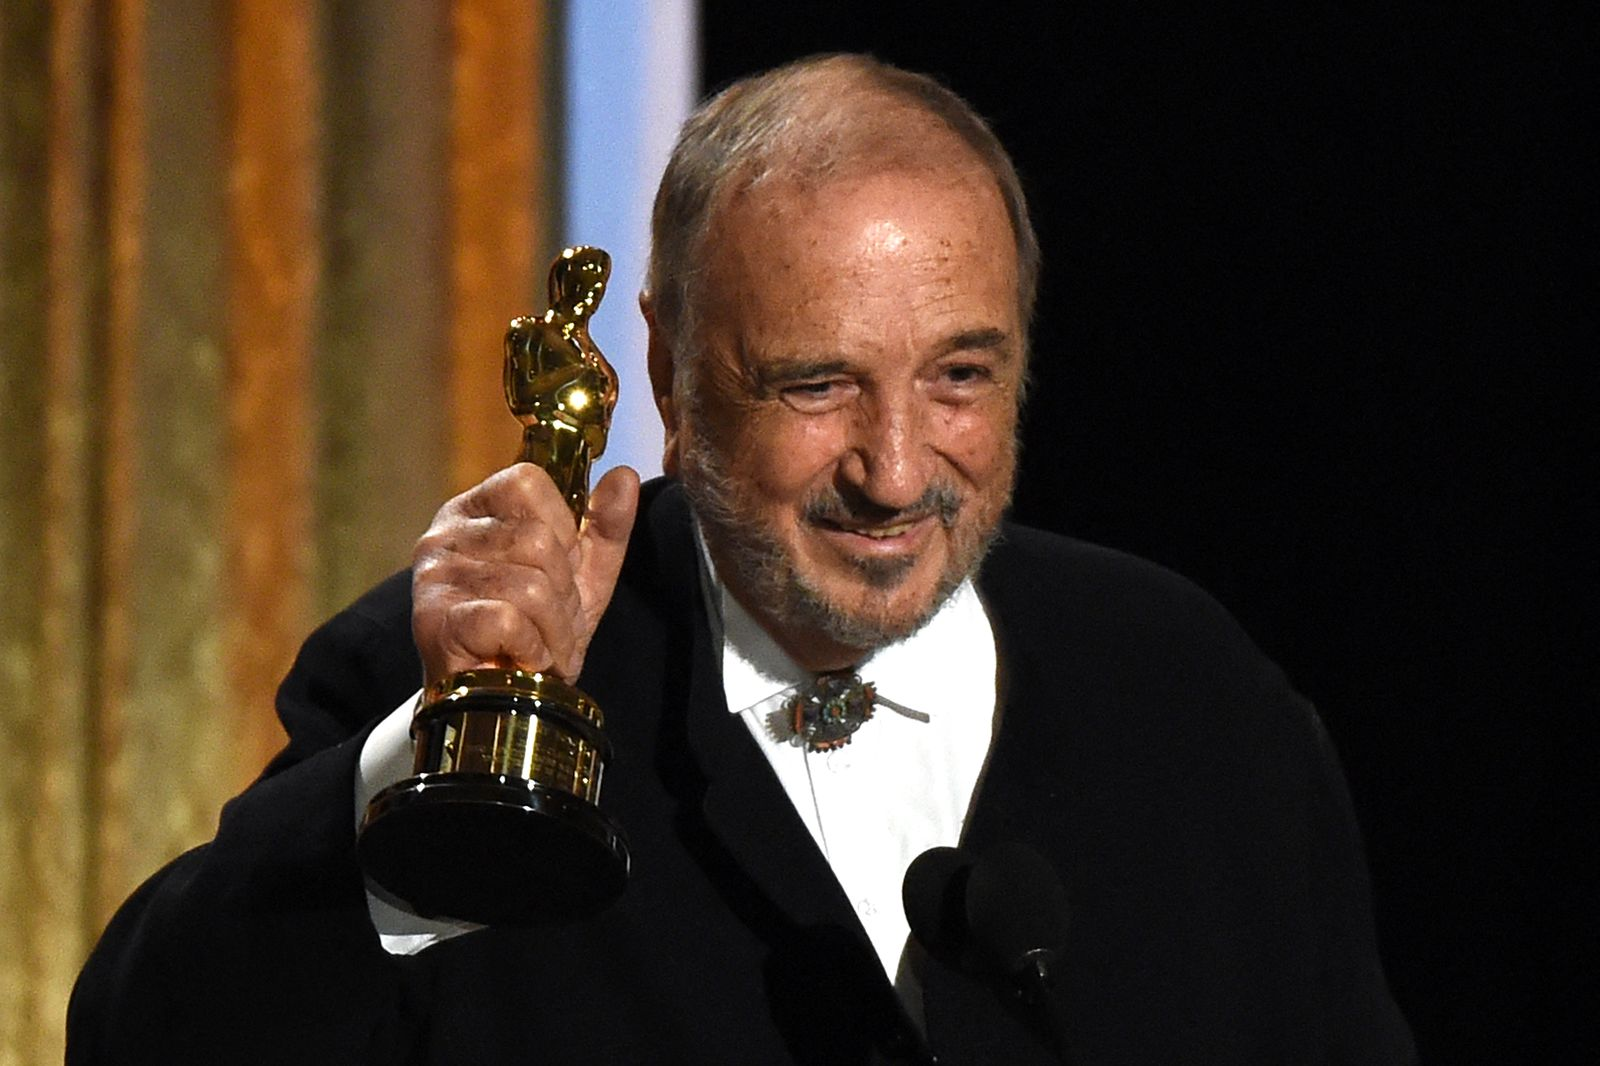 US-ENTERTAINMENT-GOVERNORS AWARDS-ACADEMY